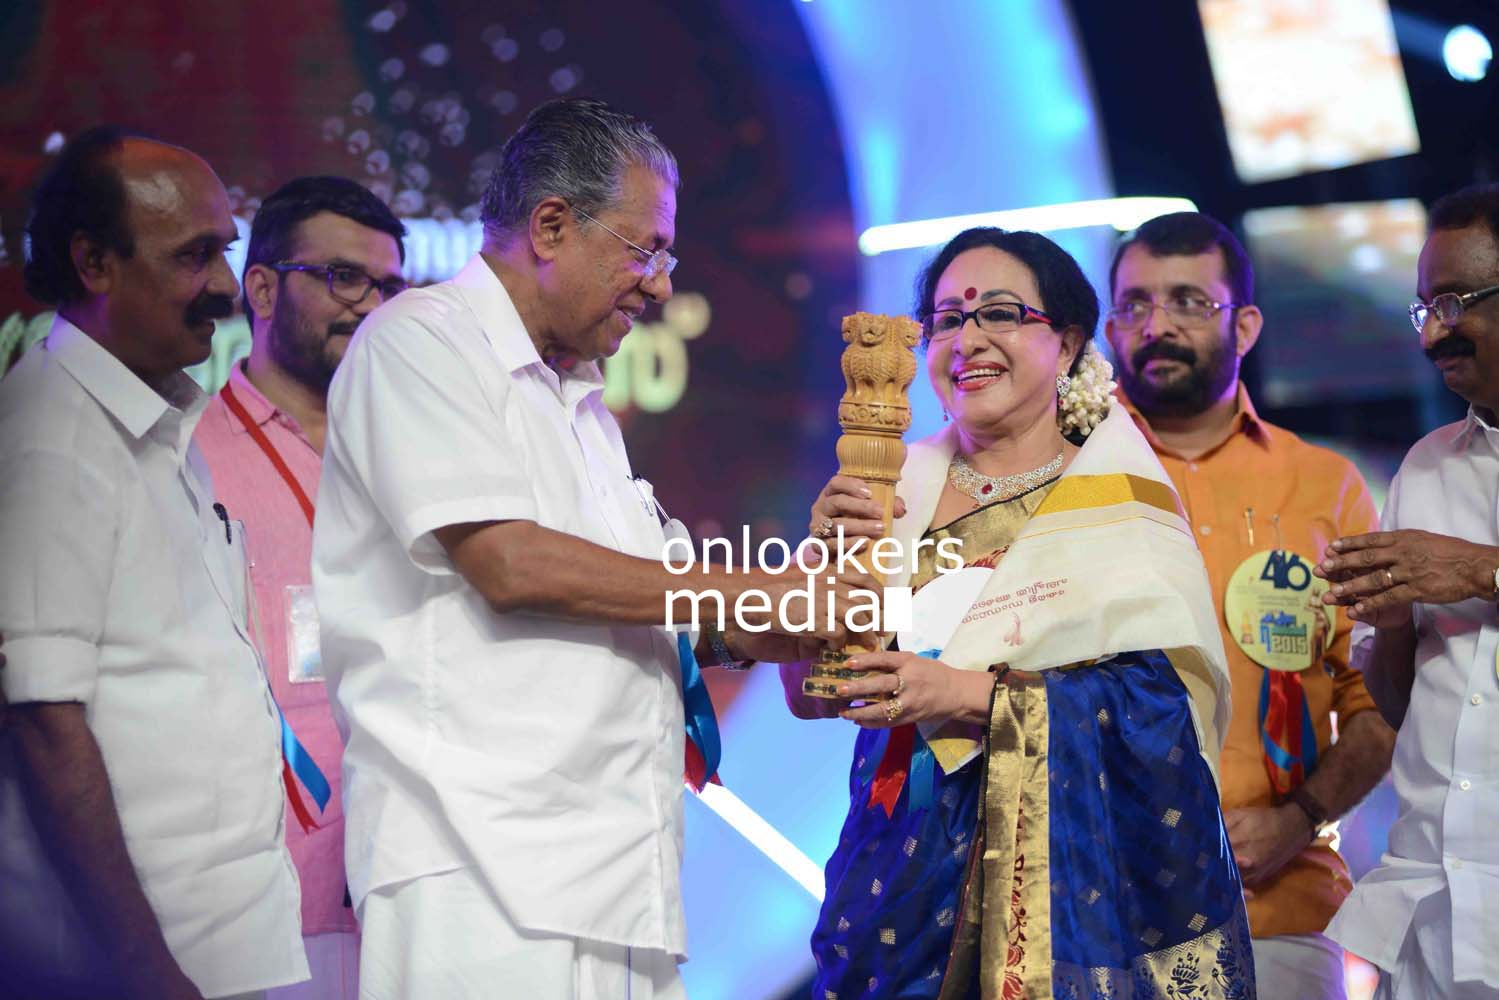 http://onlookersmedia.in/wp-content/uploads/2016/10/Kerala-State-Film-Awards-2015-stills-Photos-39.jpg